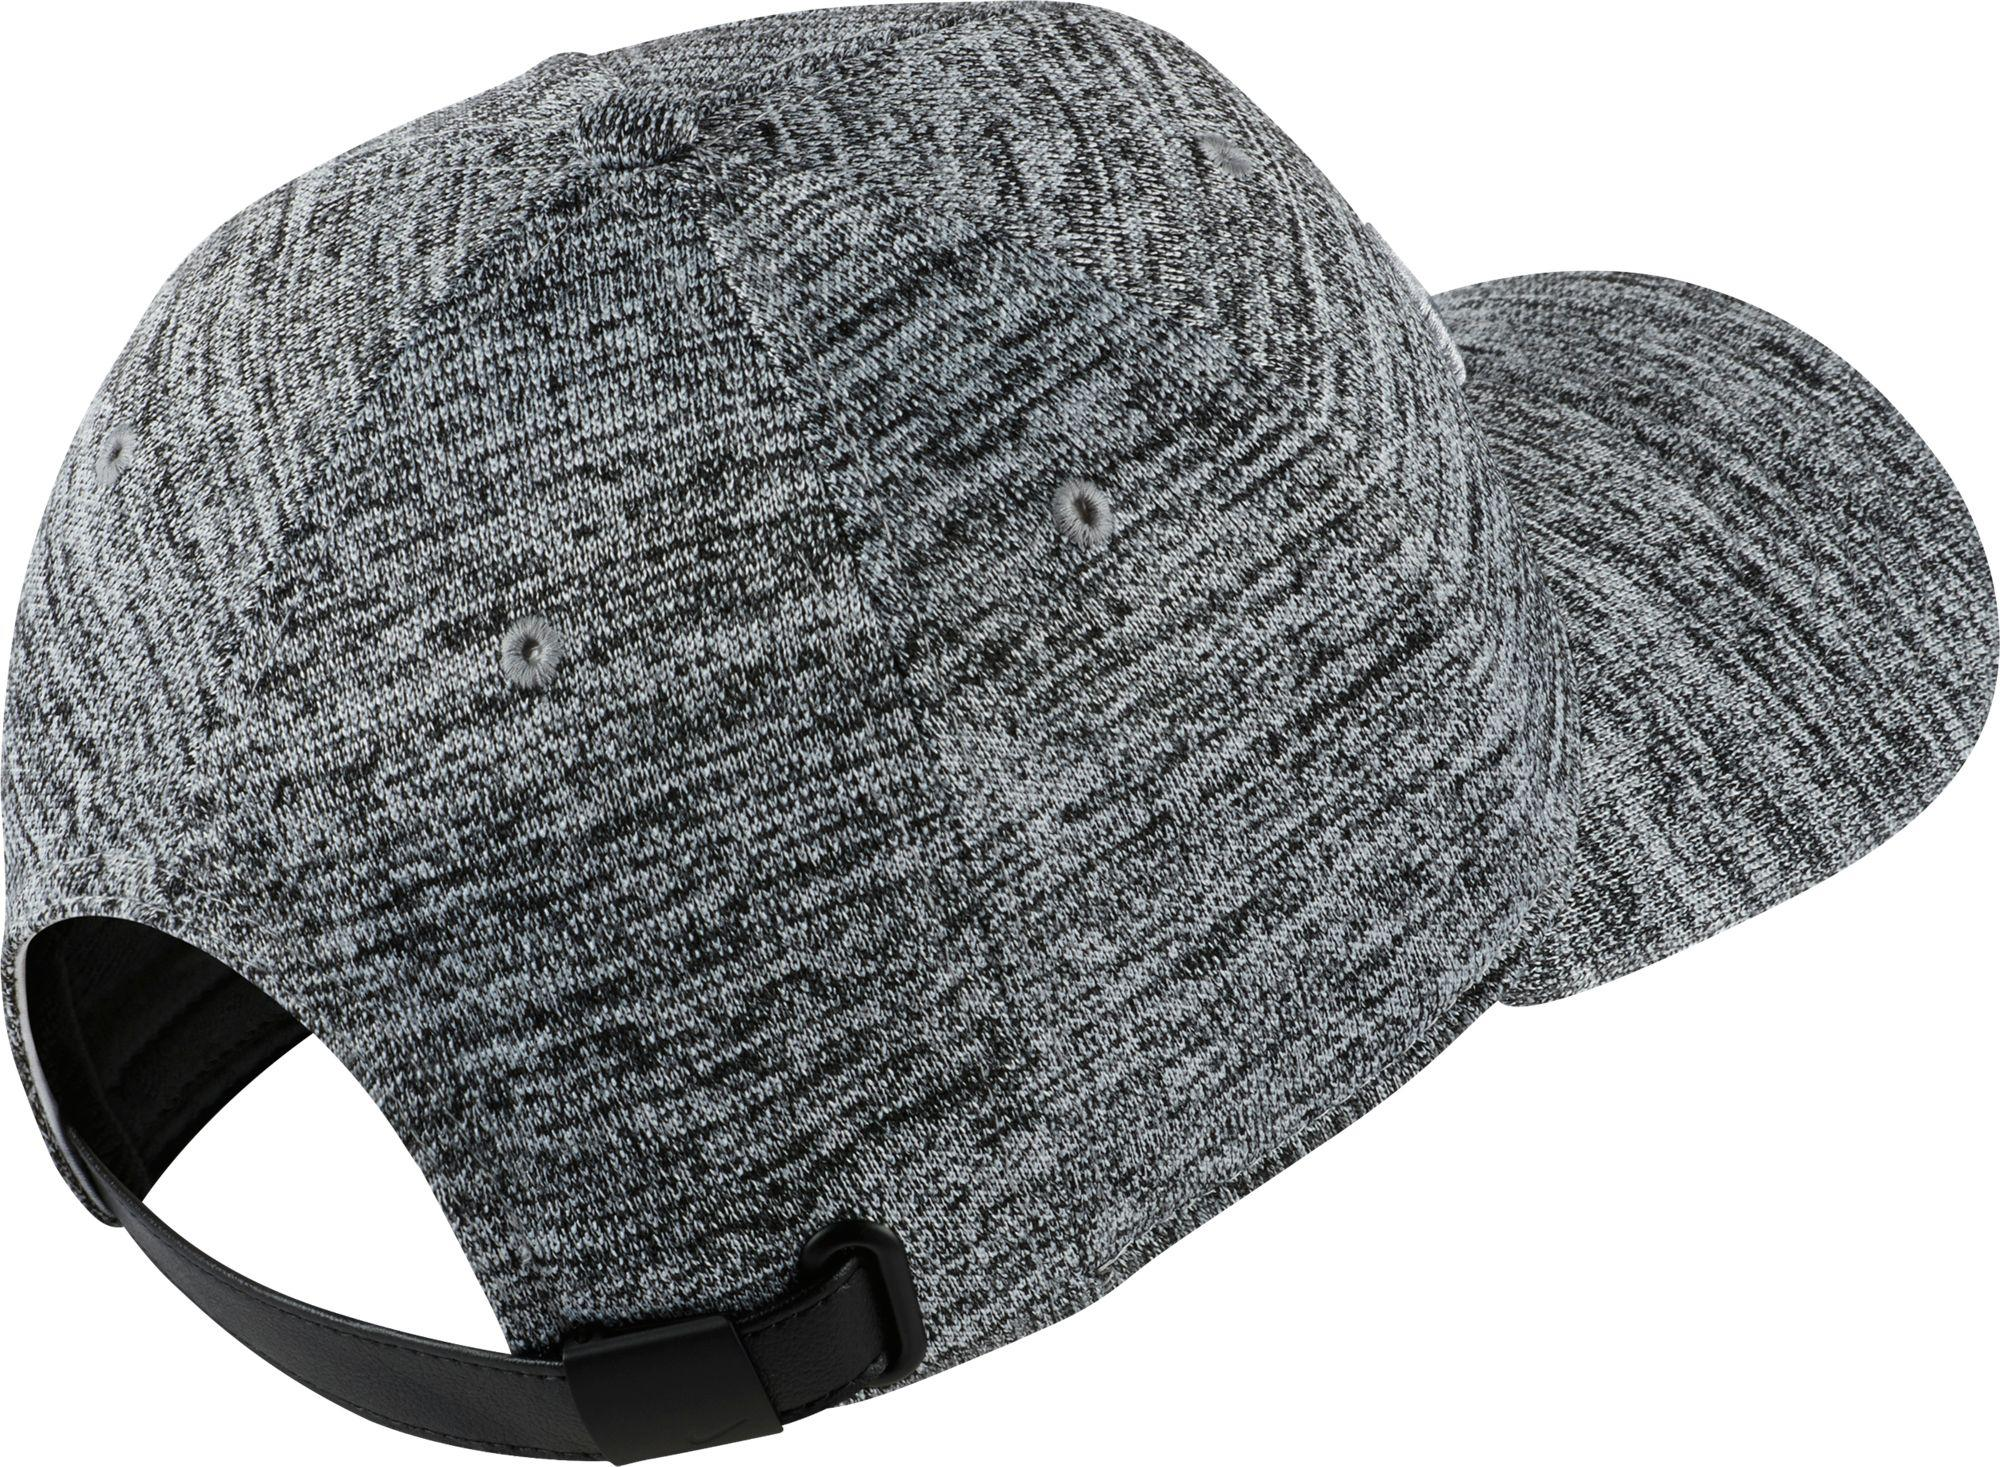 Lyst - Nike Aerobill Classic99 Heather Golf Hat in Gray for Men 378e2fec01bc